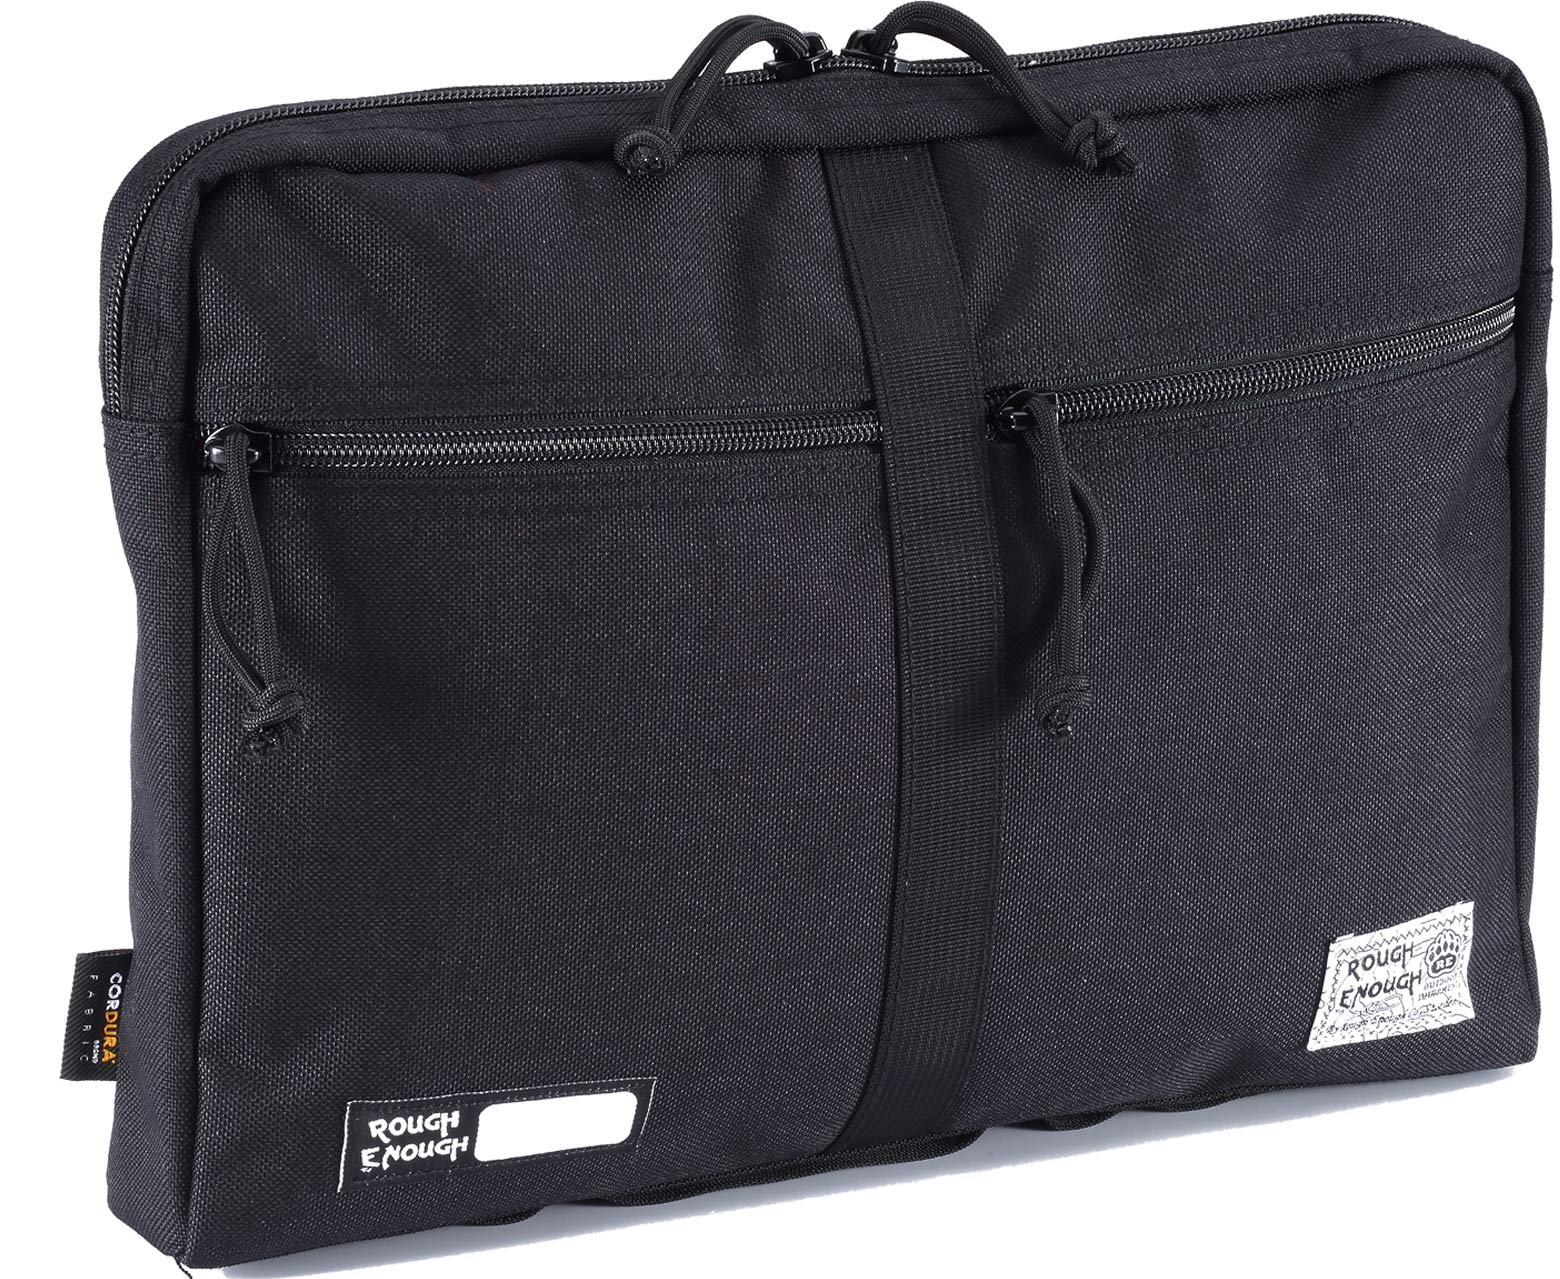 Rough Enough CORDURA 13.3 inches Laptop Tablet Messenger Computer Bag Sleeve Case for Macbook Pro Air Document Briefcase Organizer with Zipper Pockets Compartments for Men Women Business Travel Black